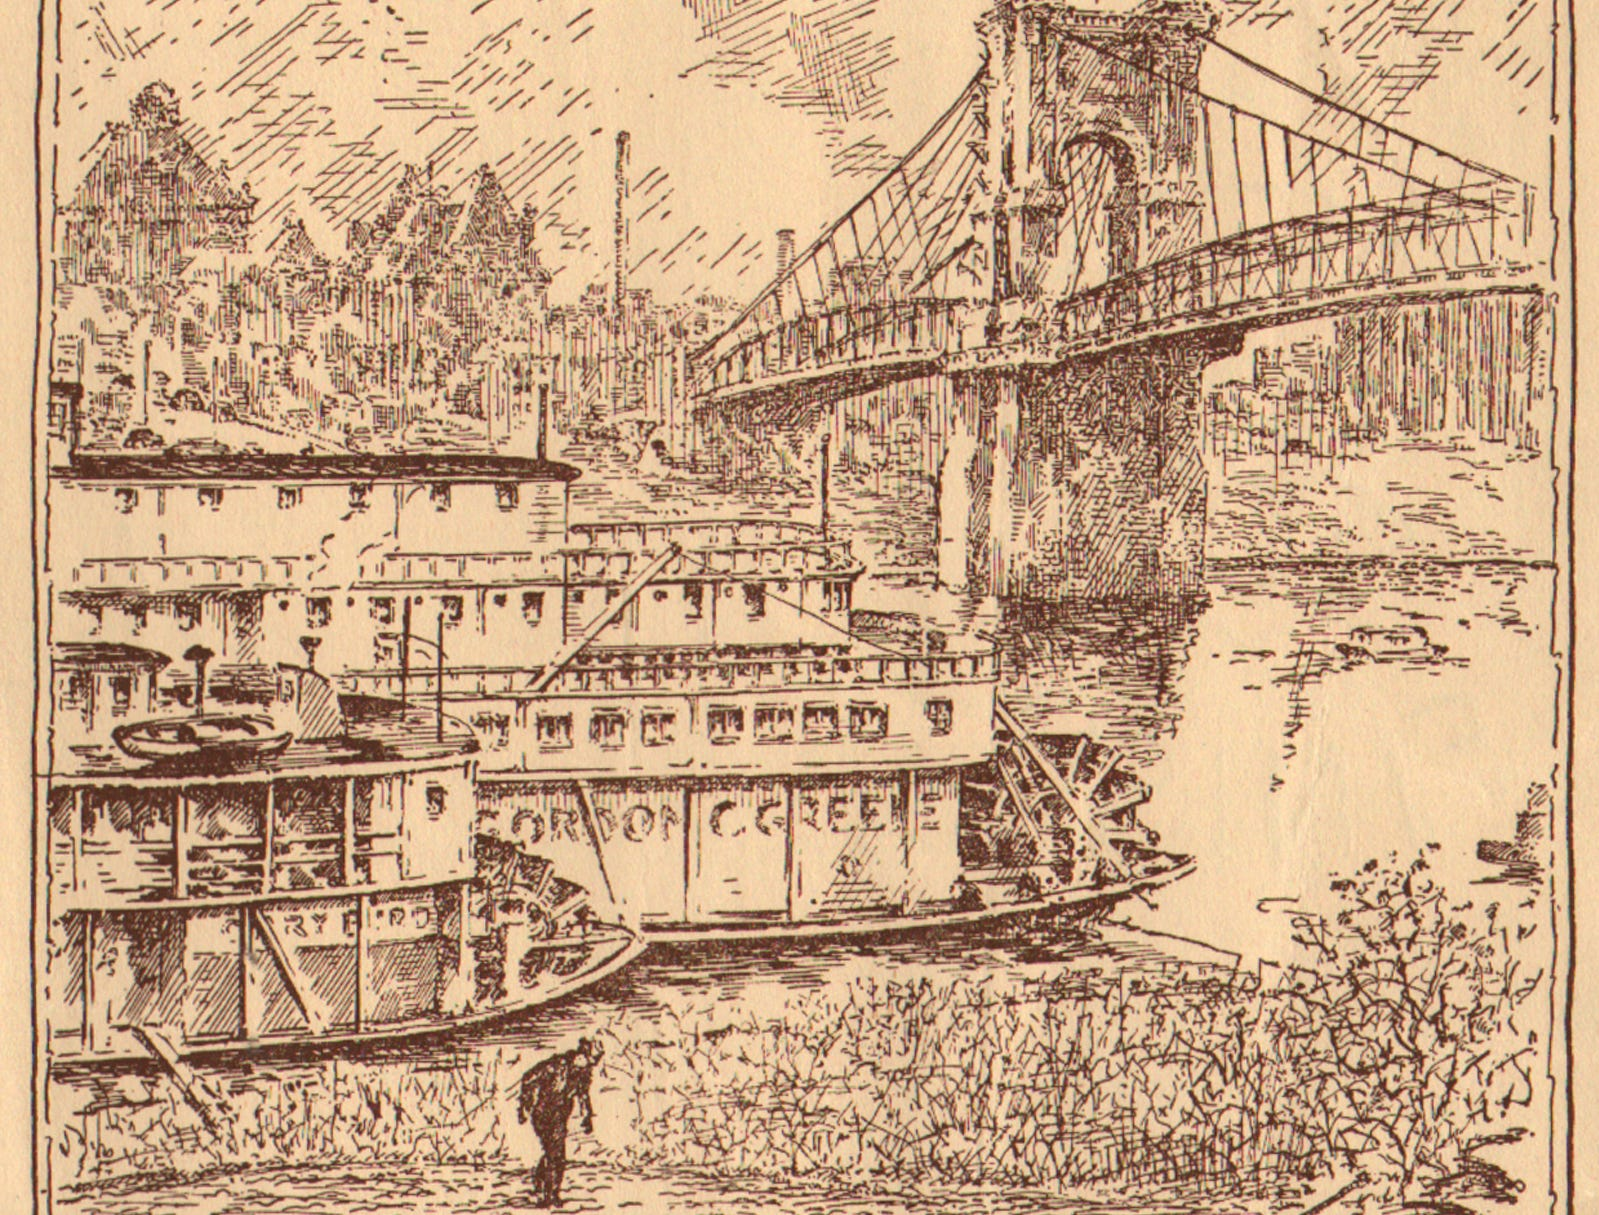 UNDATED: A drawing of the John A. Roebling Suspension Bridge. From the Enquirer archives scanned December 20, 2010